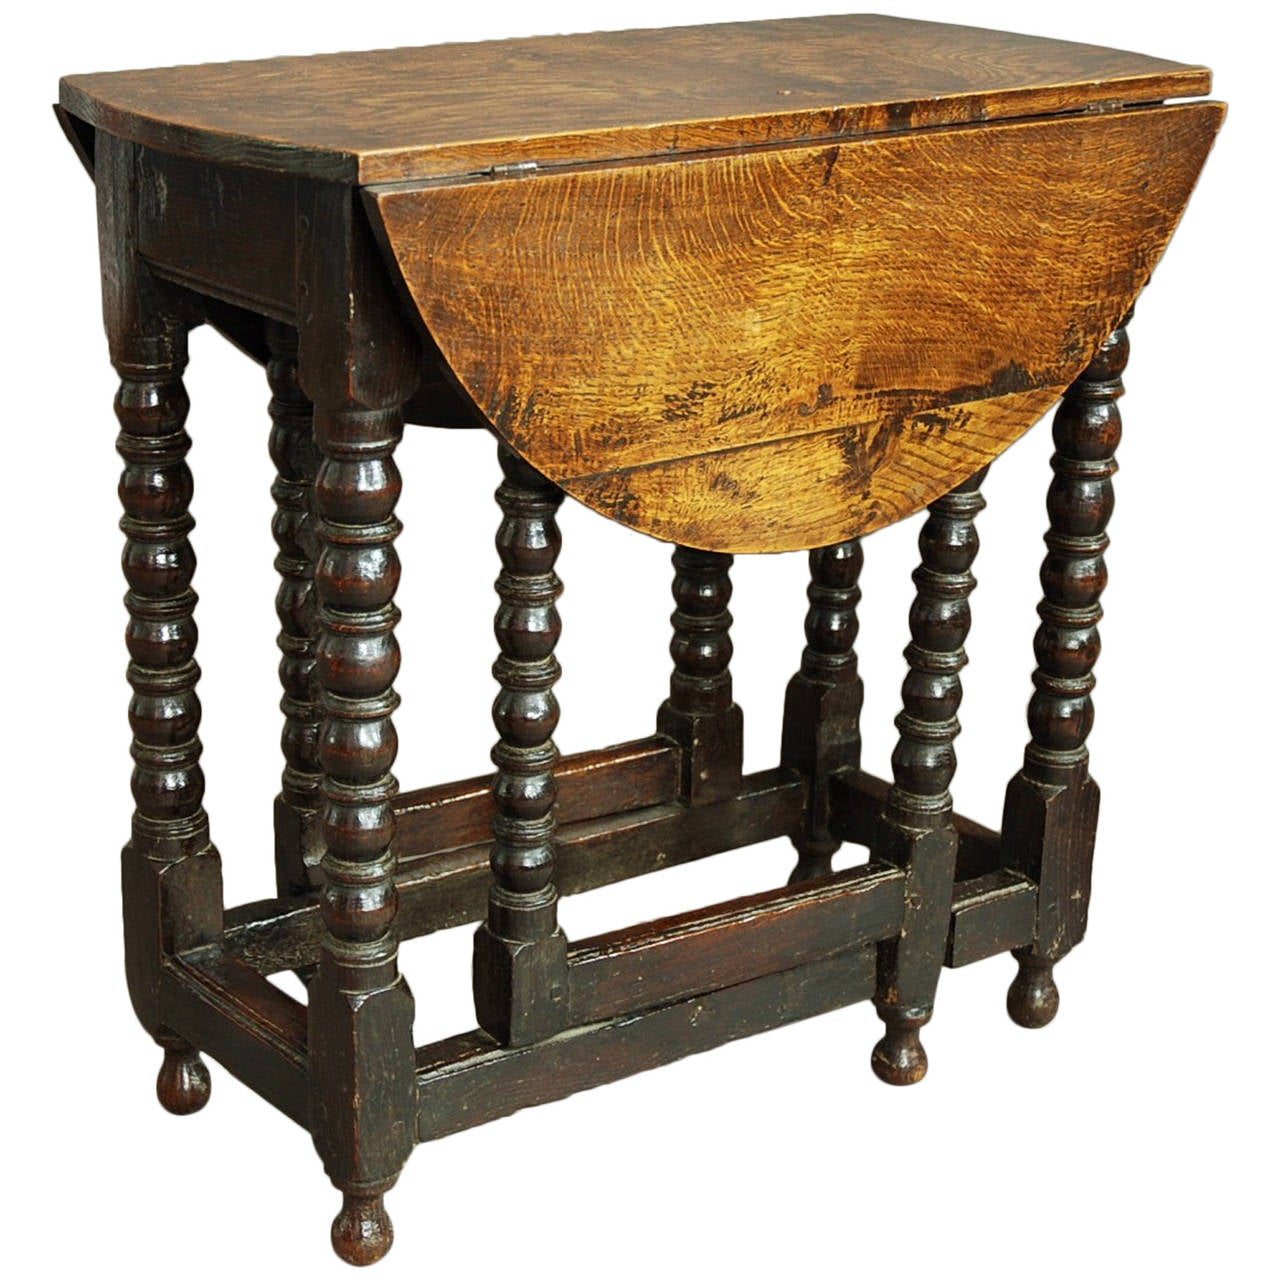 Rare 17th Century Gateleg Table Of Small Proportions 1